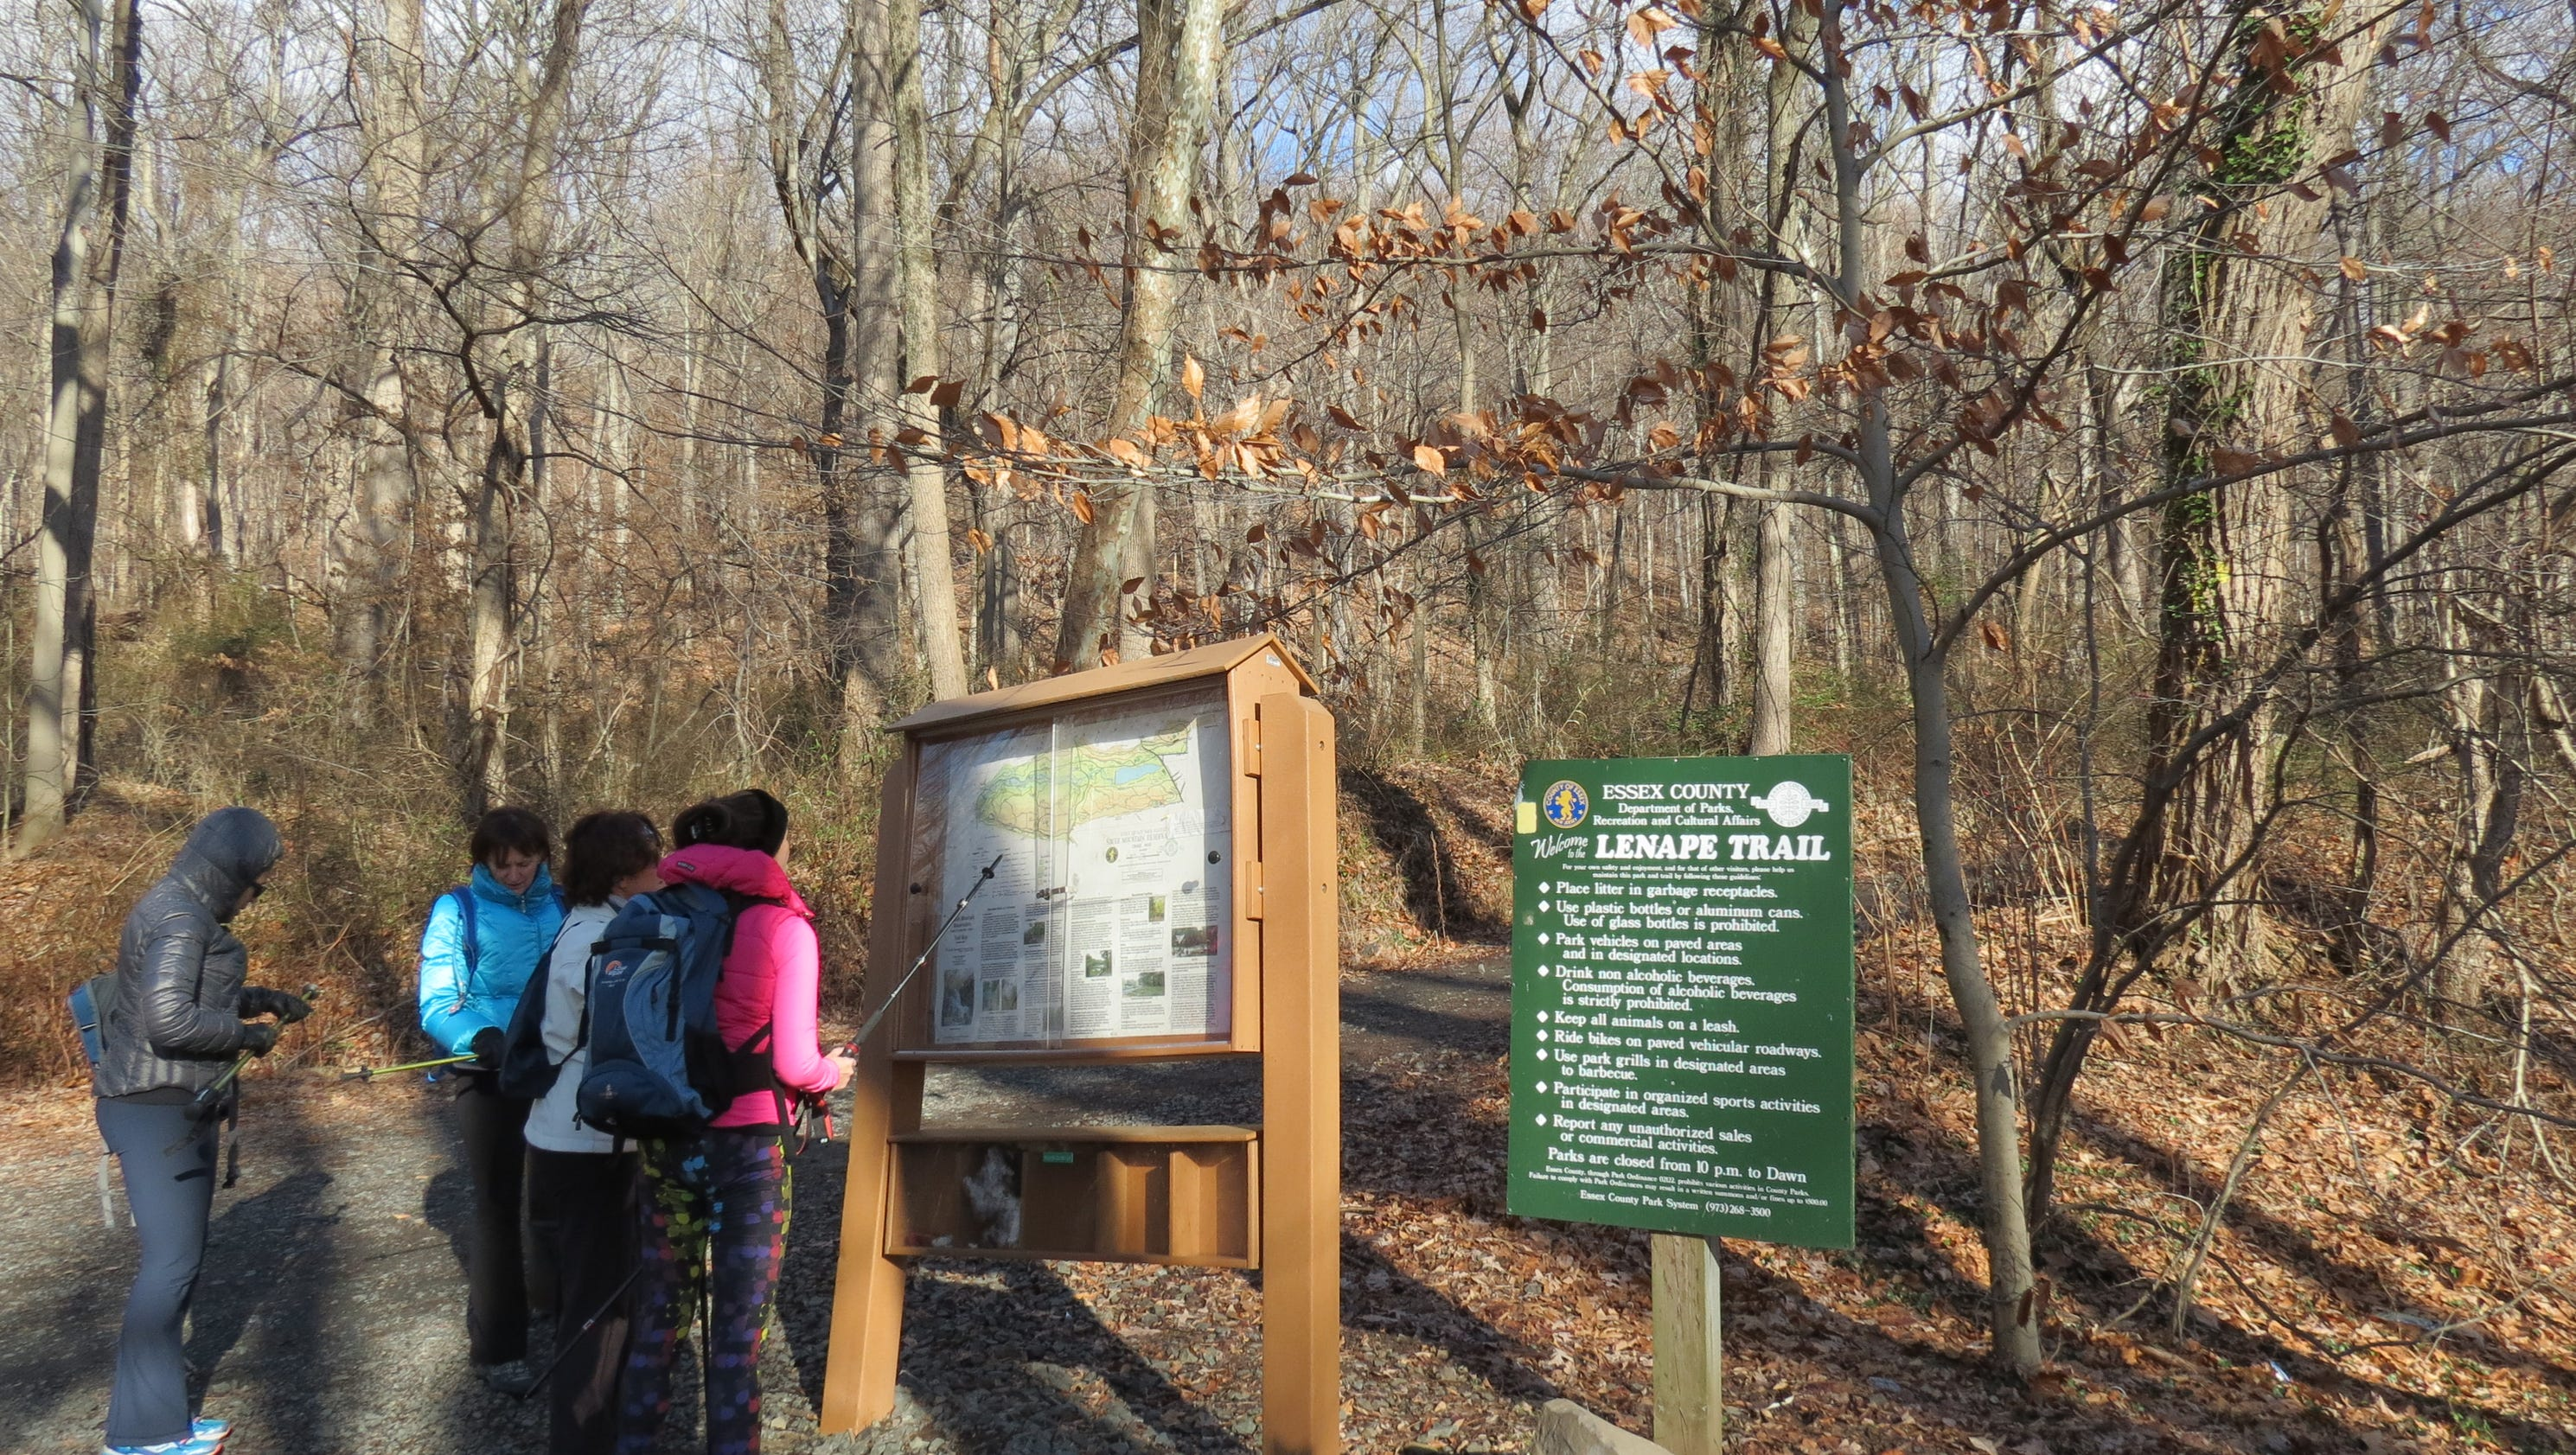 south mountain conservancy offers guided tours